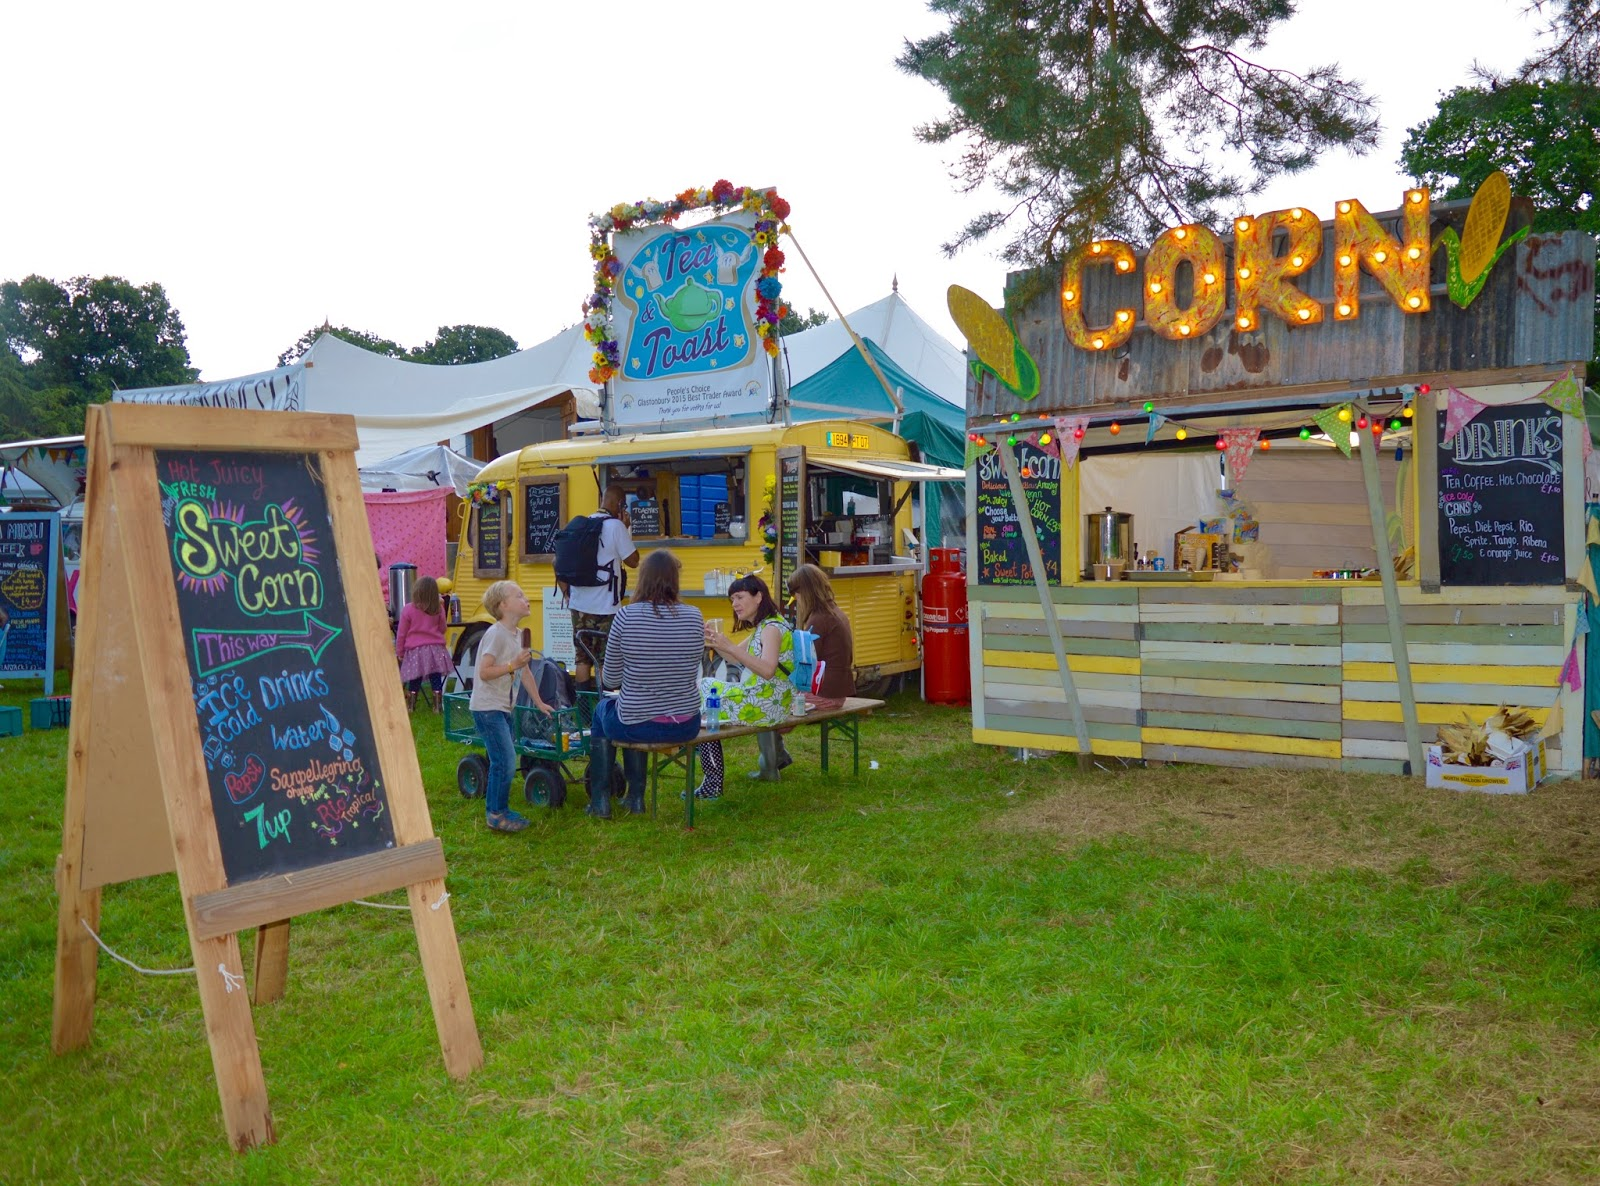 33 Reasons we LOVED the Just So Festival 2016 - corn van